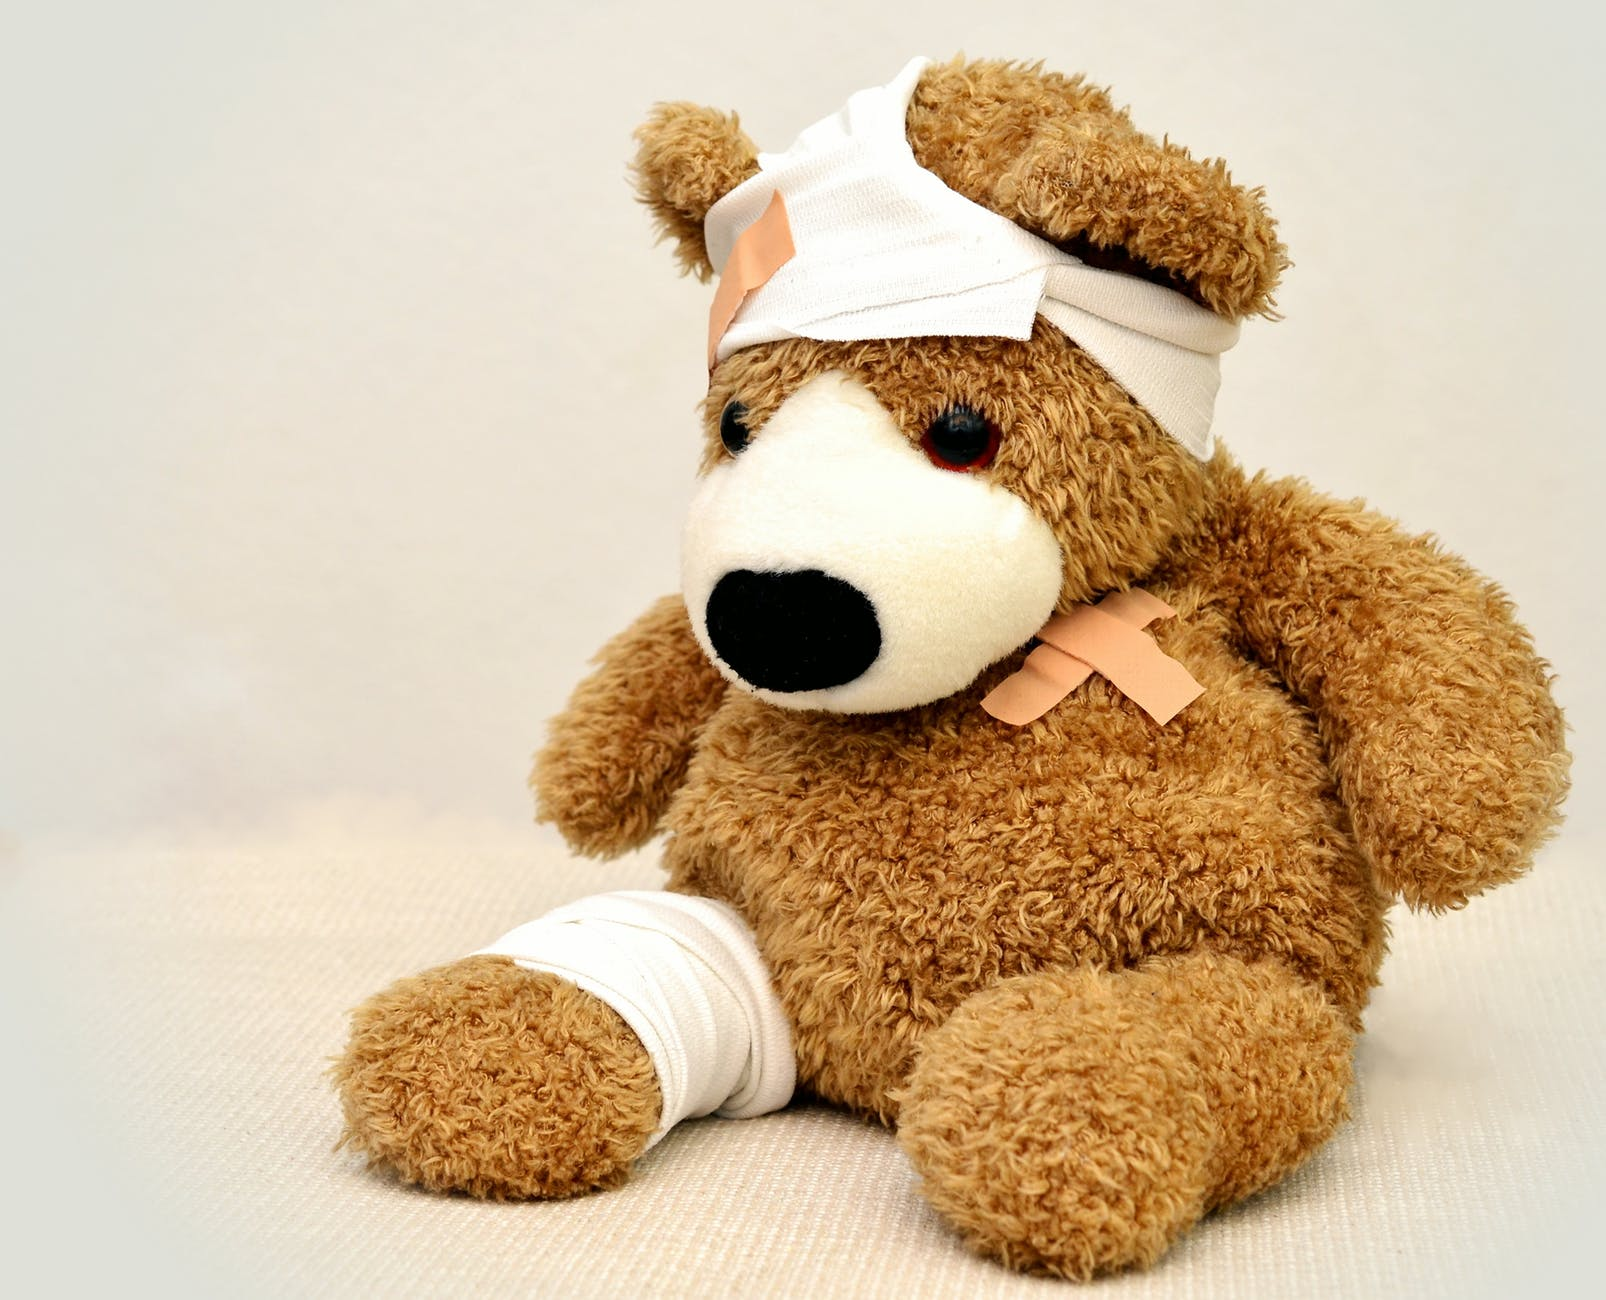 hurt teddy bear, showing how bad SEO can hurt financial websites